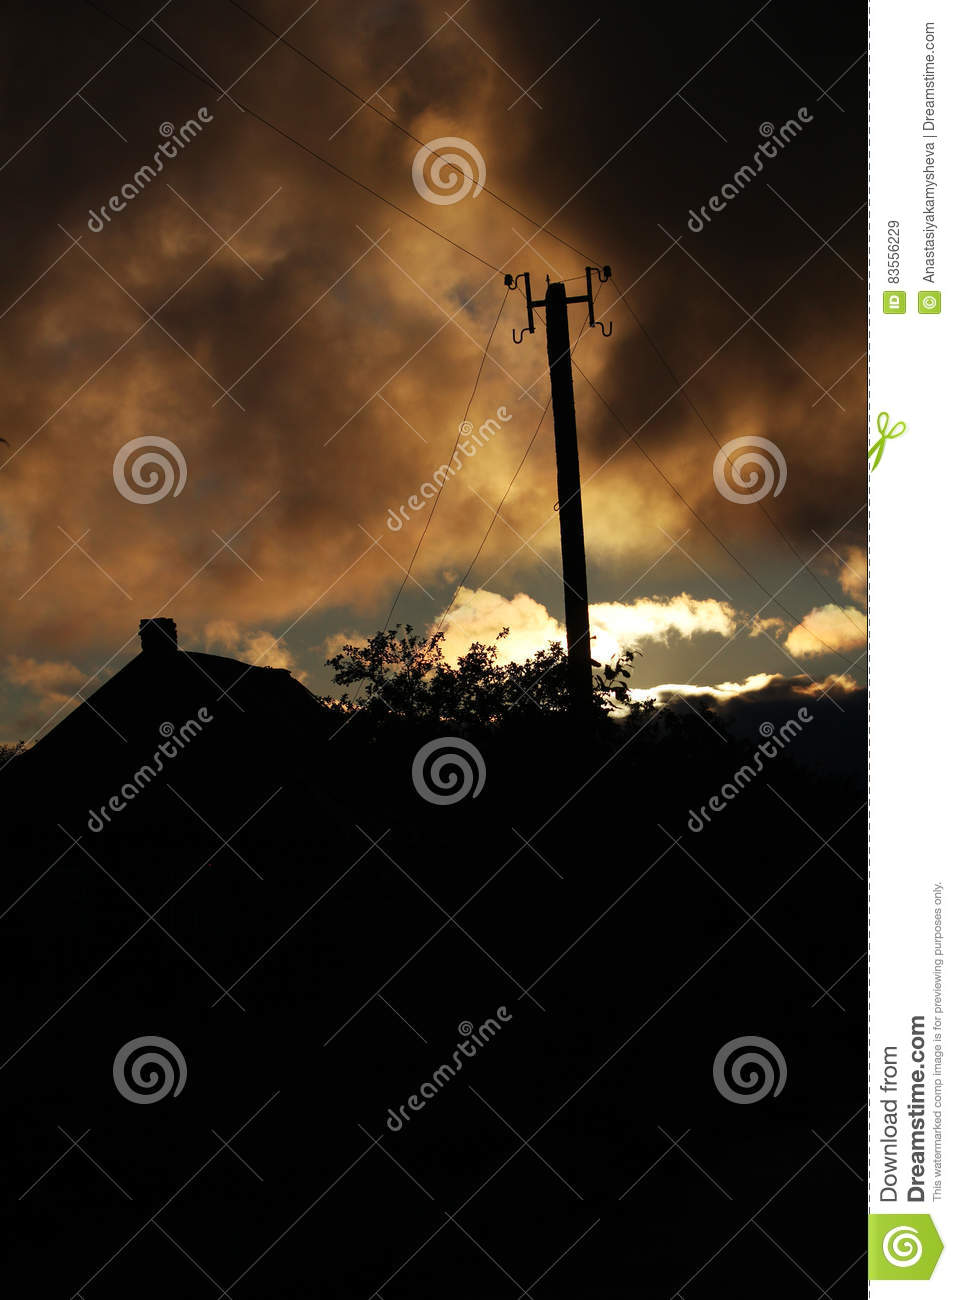 A countryside house roof and an electric line at sunset time